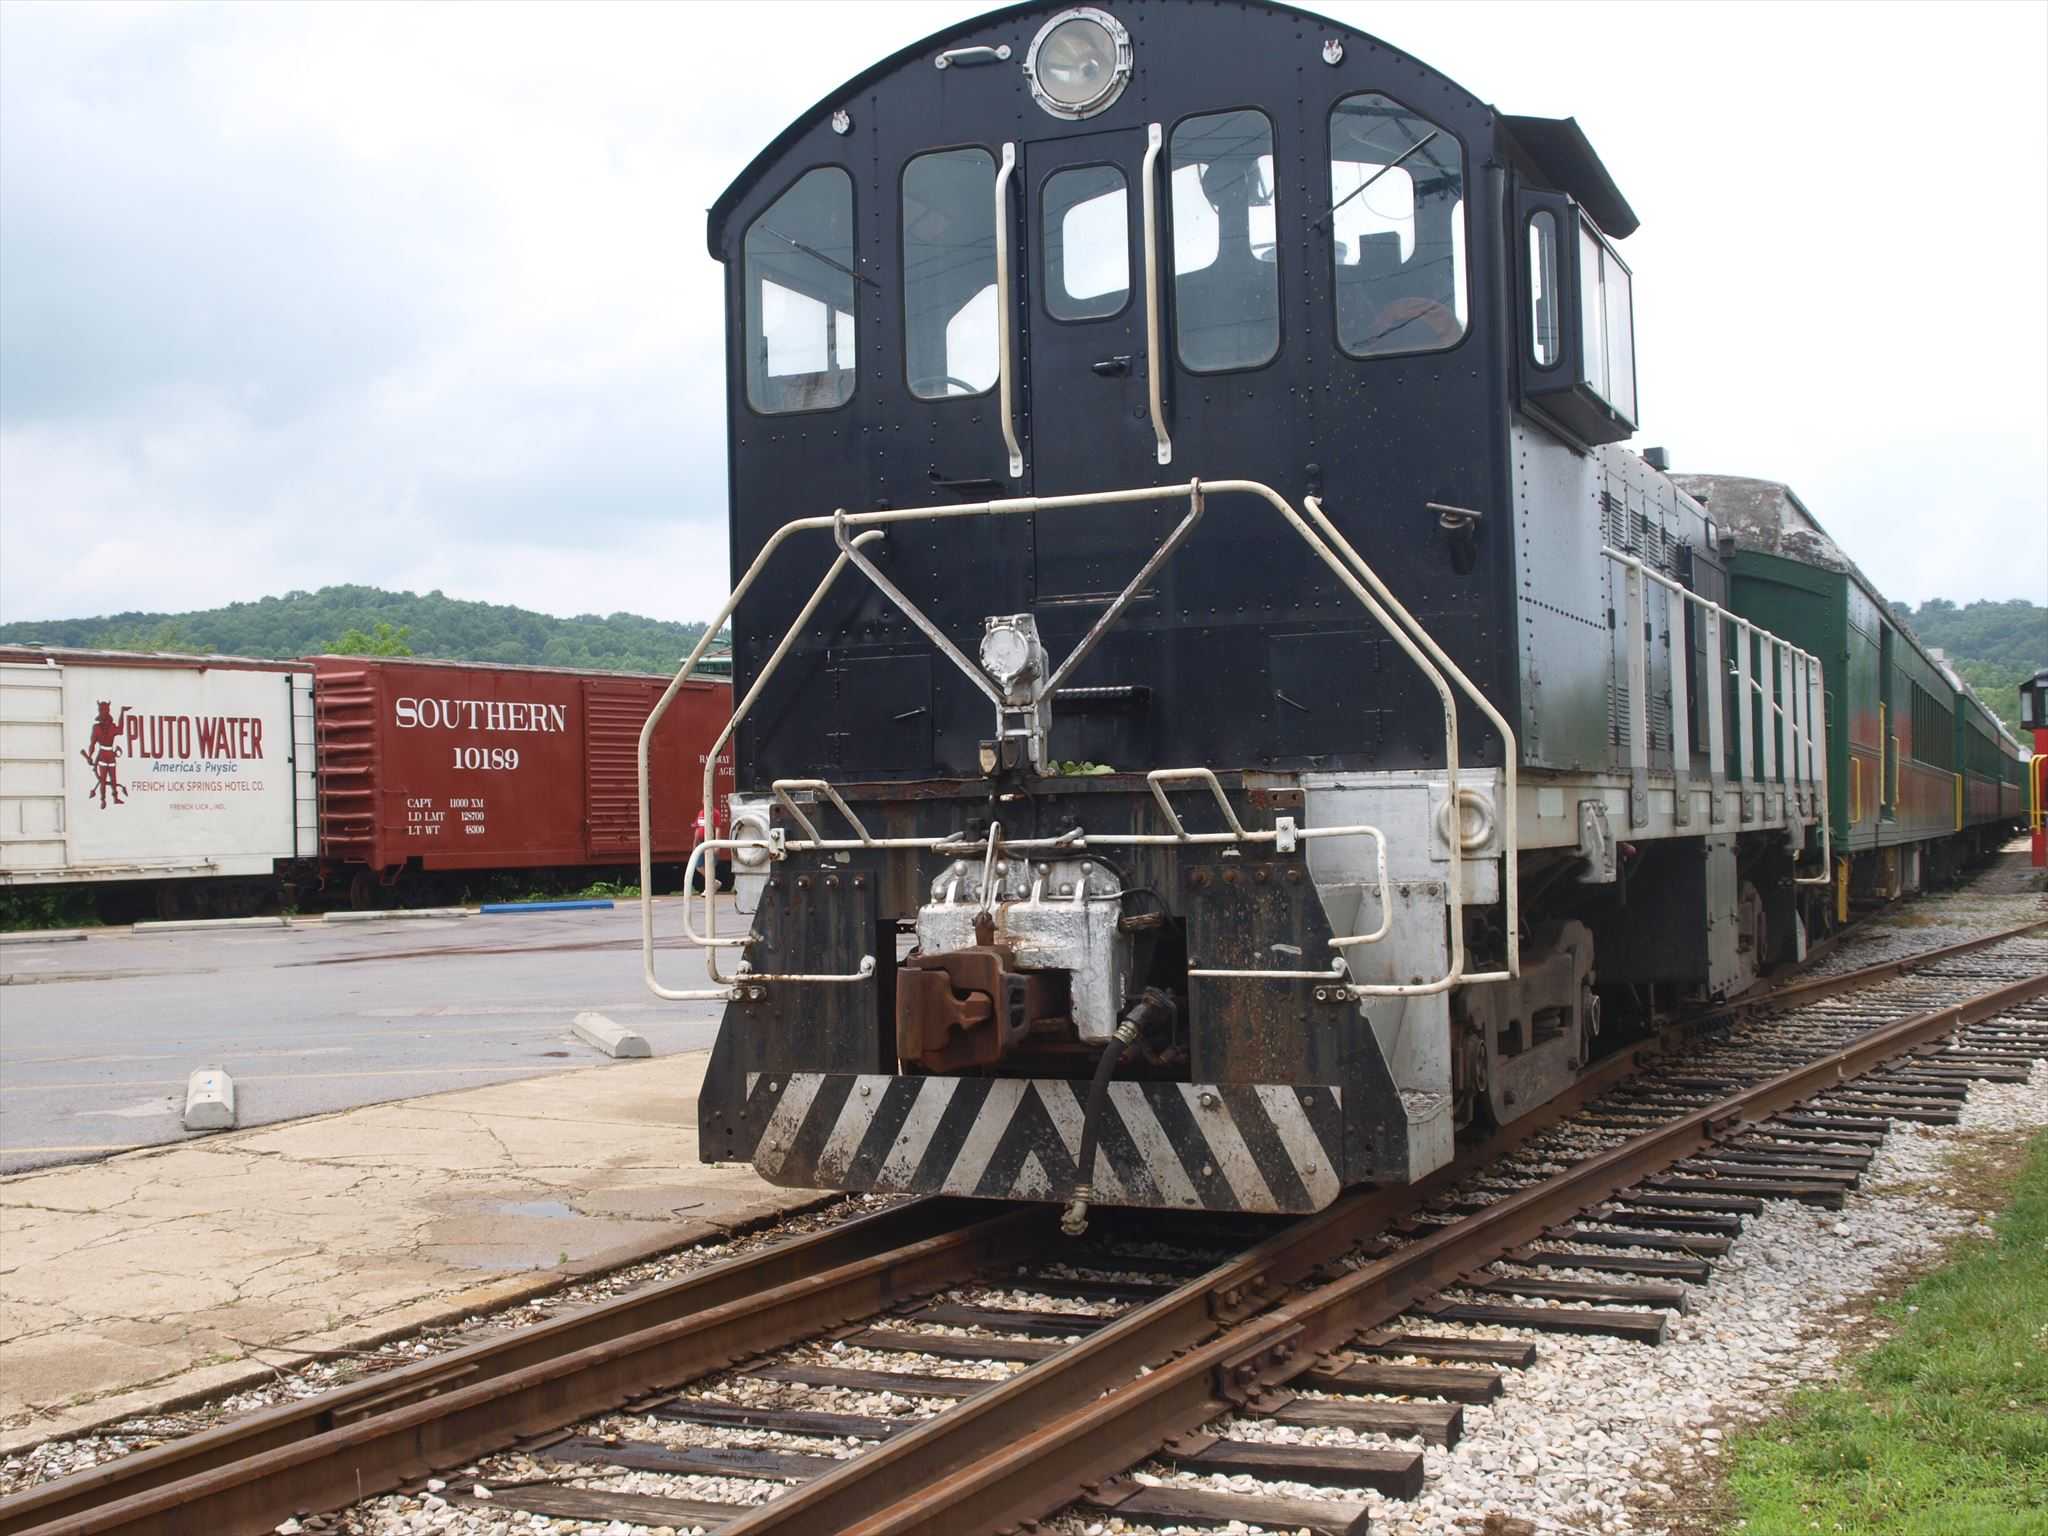 French lick railroad museum, cheerleader getting naked video